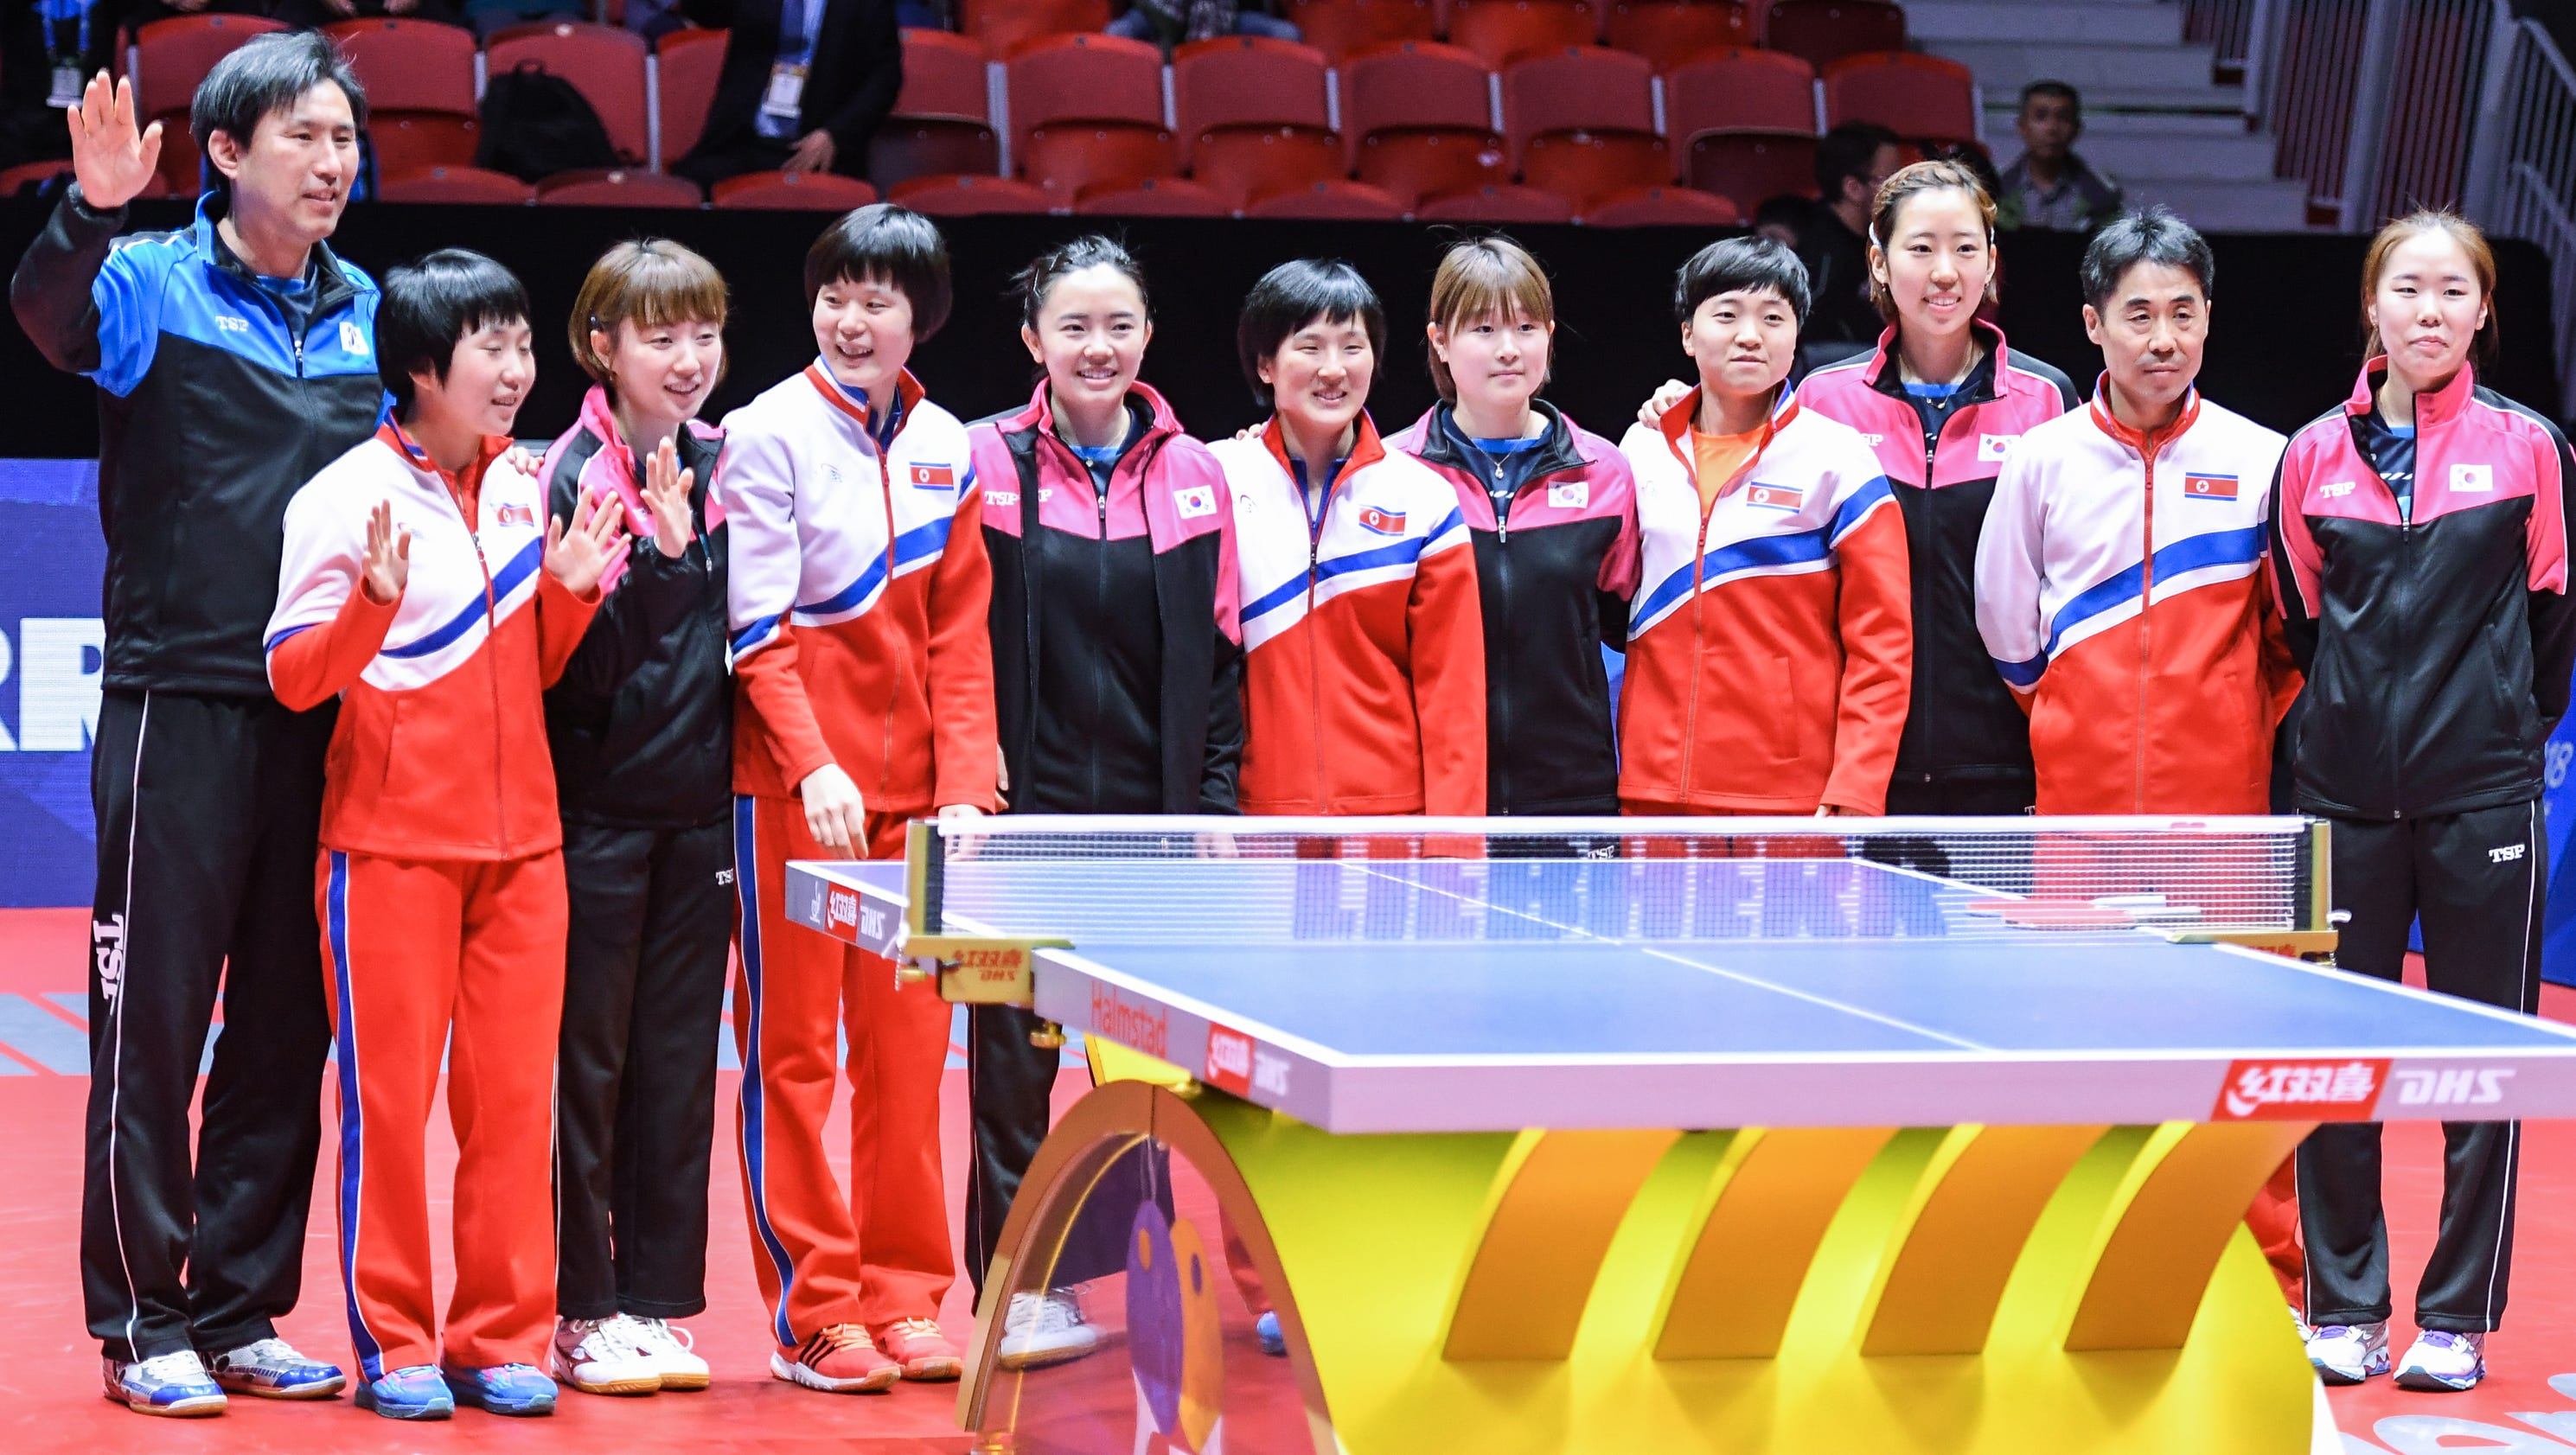 North korea south korea to compete with unified table tennis team - World table tennis championships ...